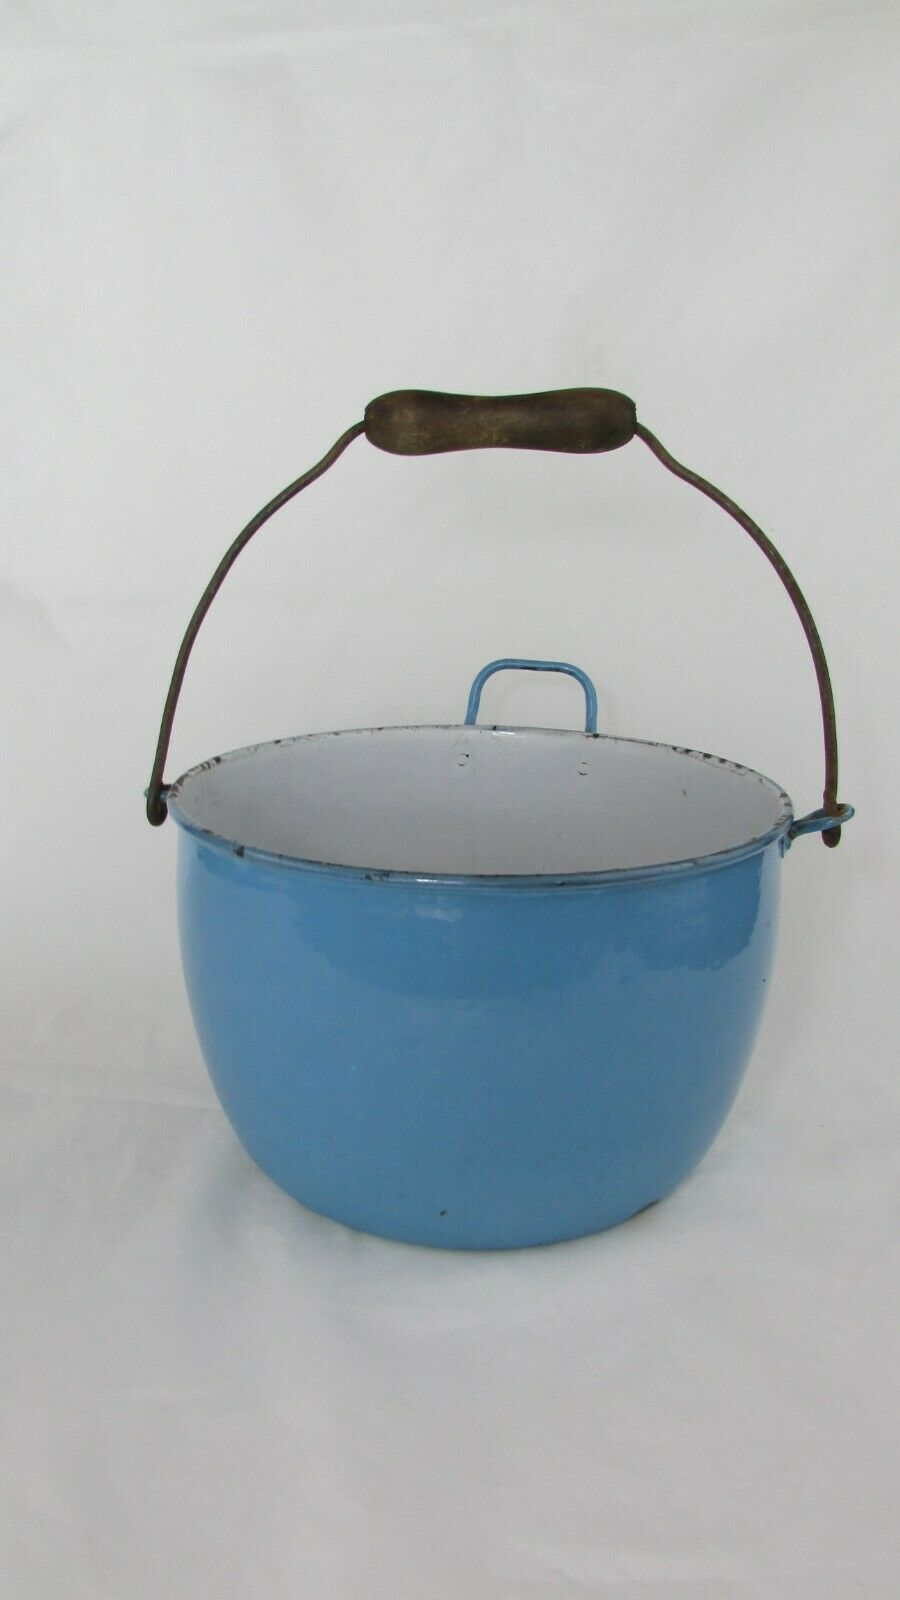 Vintage Enamel  Pail Bucket Blue and White Enamelware With Wooden Handle